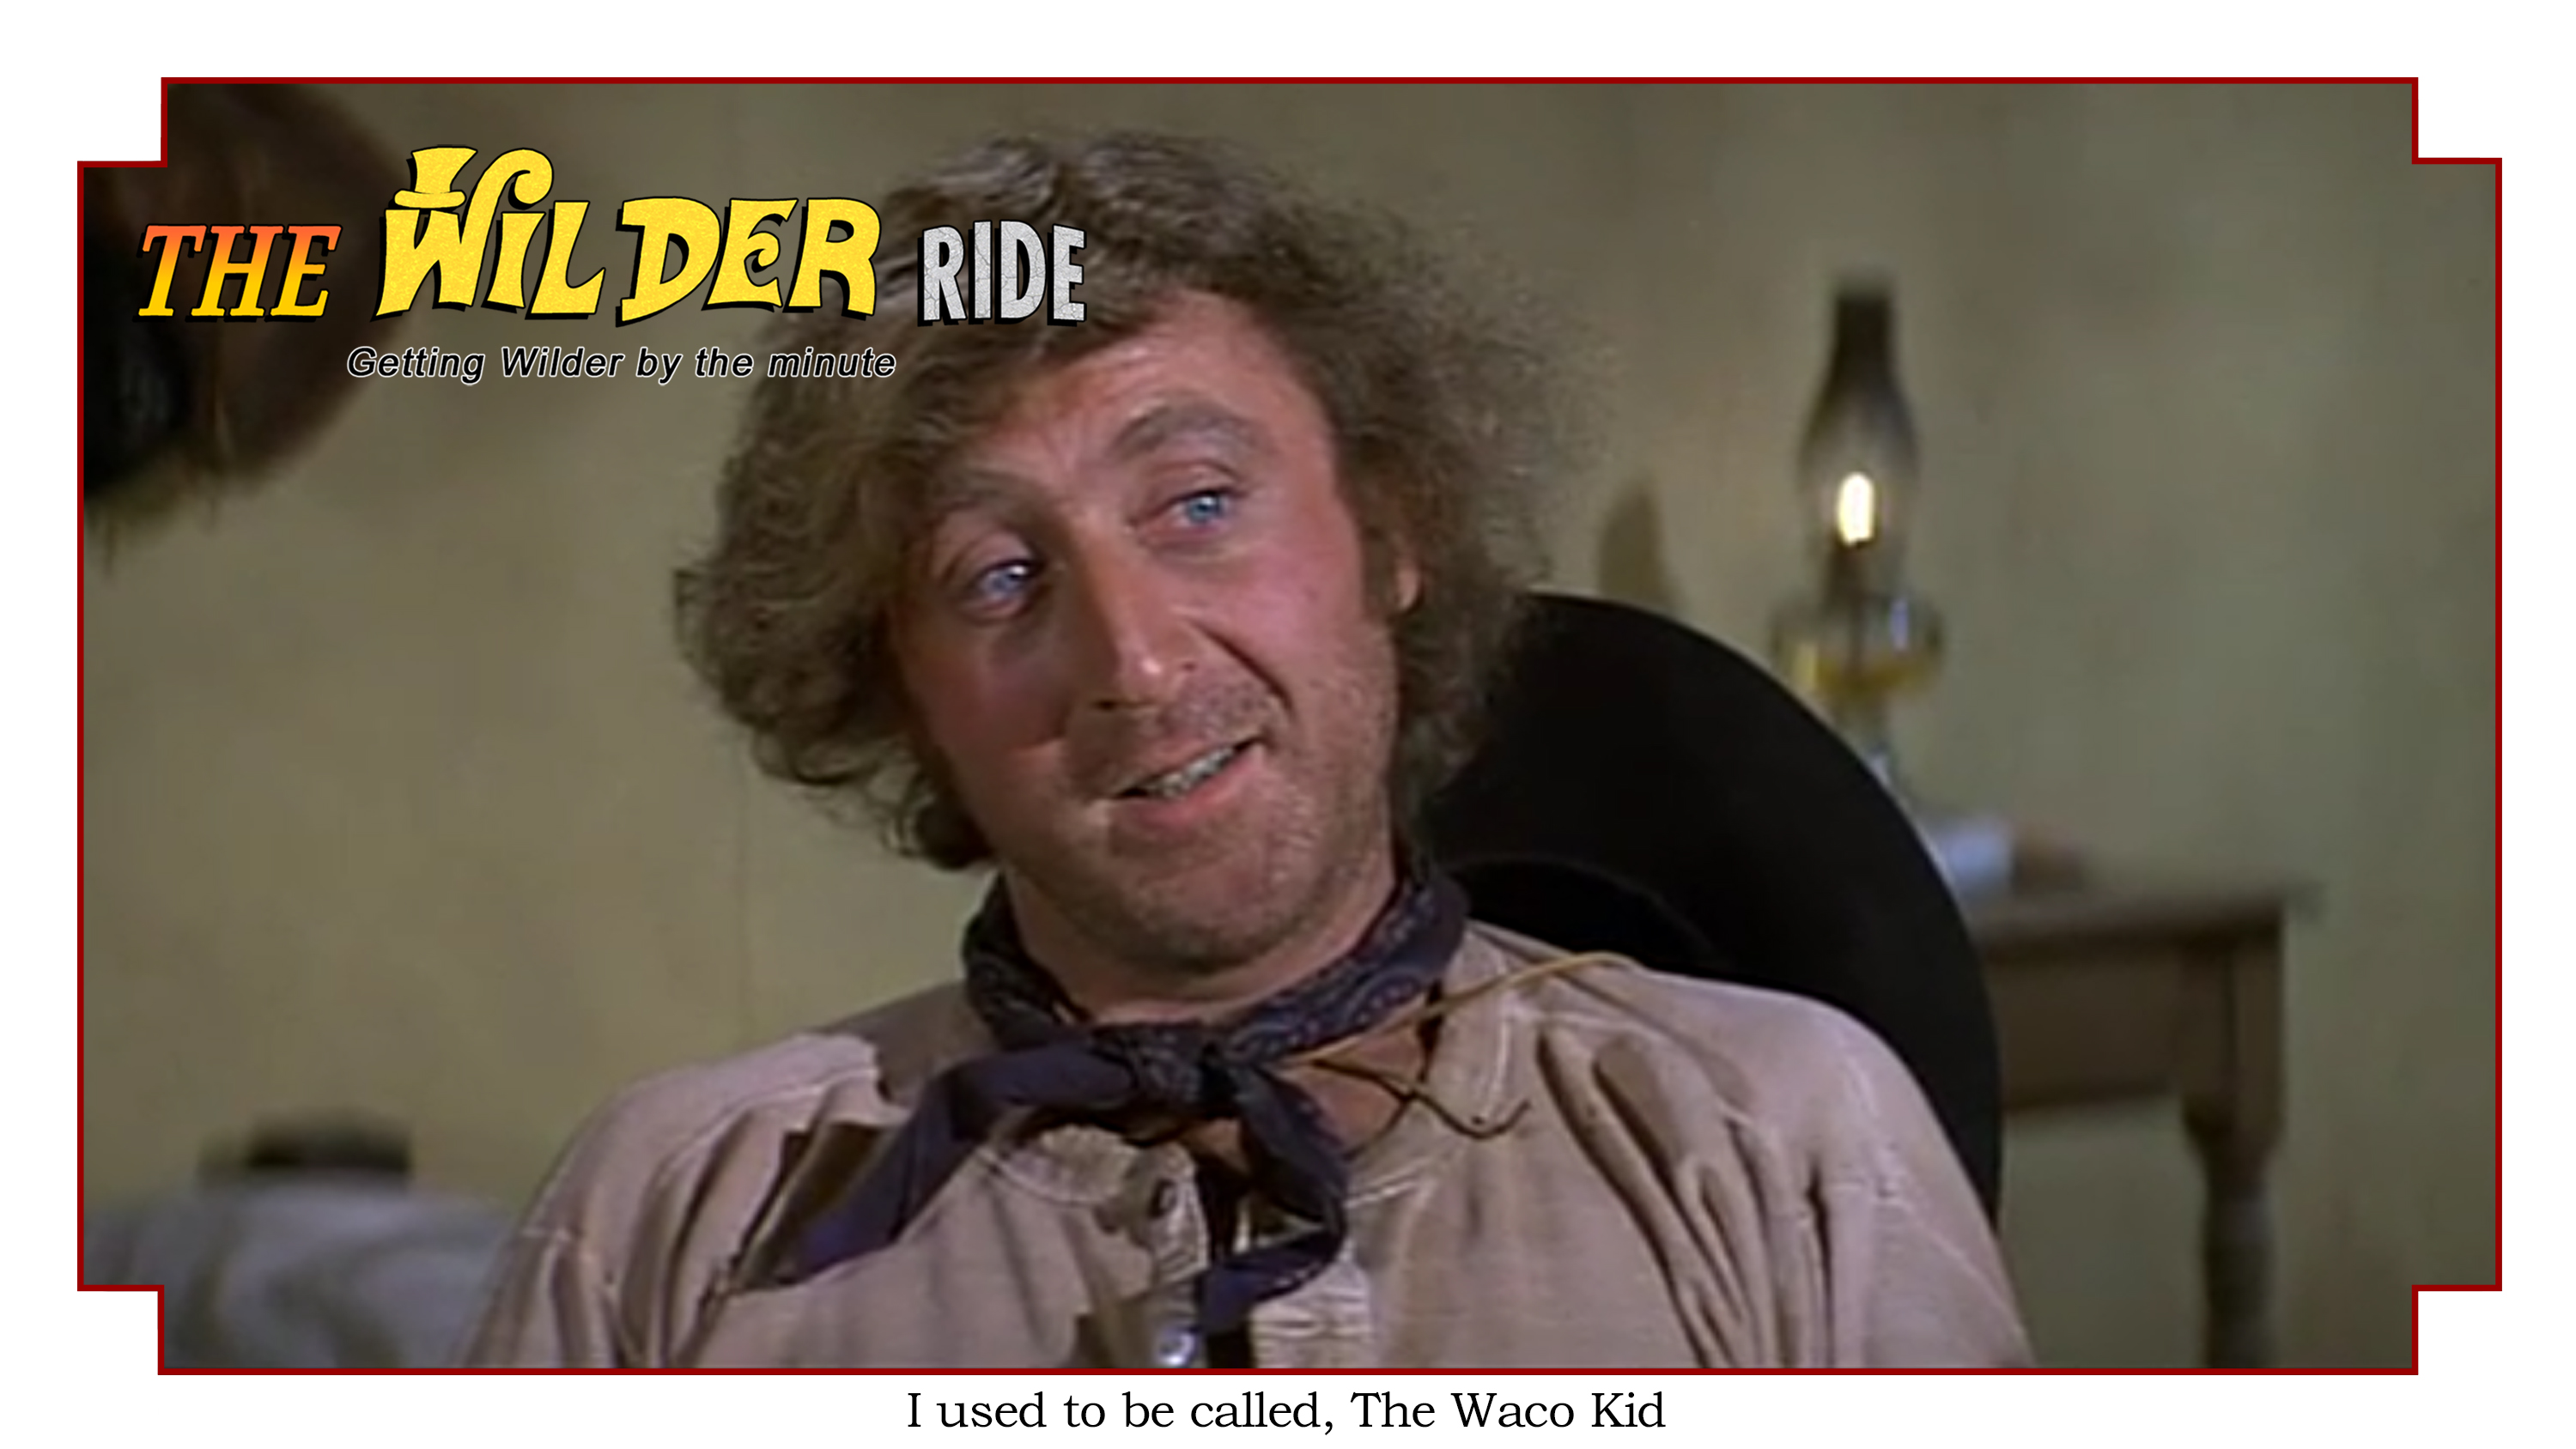 Episode 35 - I used to be called the Waco Kid